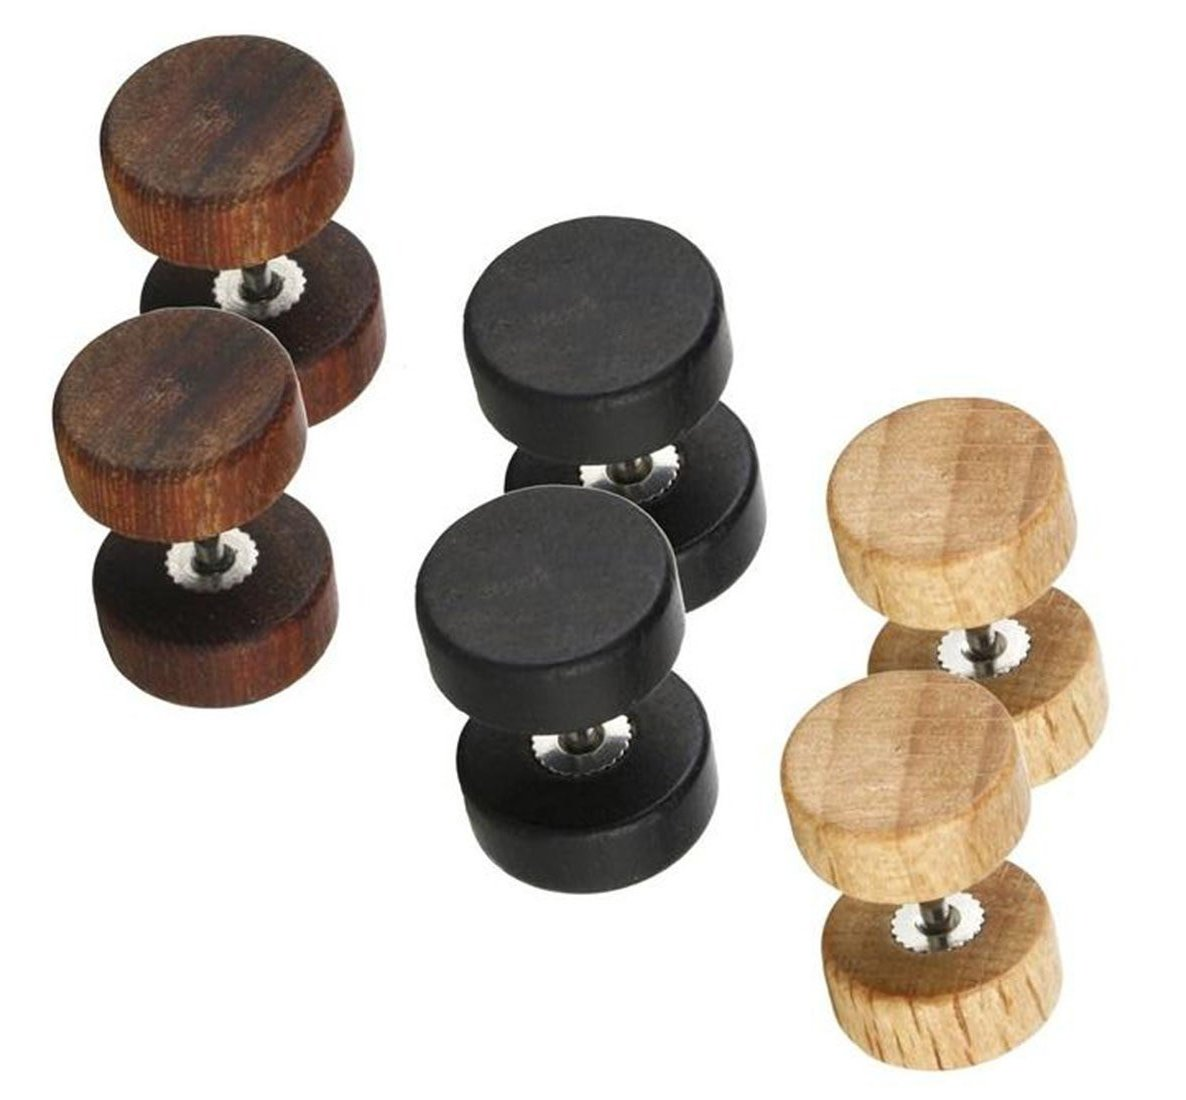 3 Pairs/Pack Wood Cheater Fake Ear Plugs Gauges Illusion Screw Stud Earrings for Men and Women 6MM LANHI L0917116